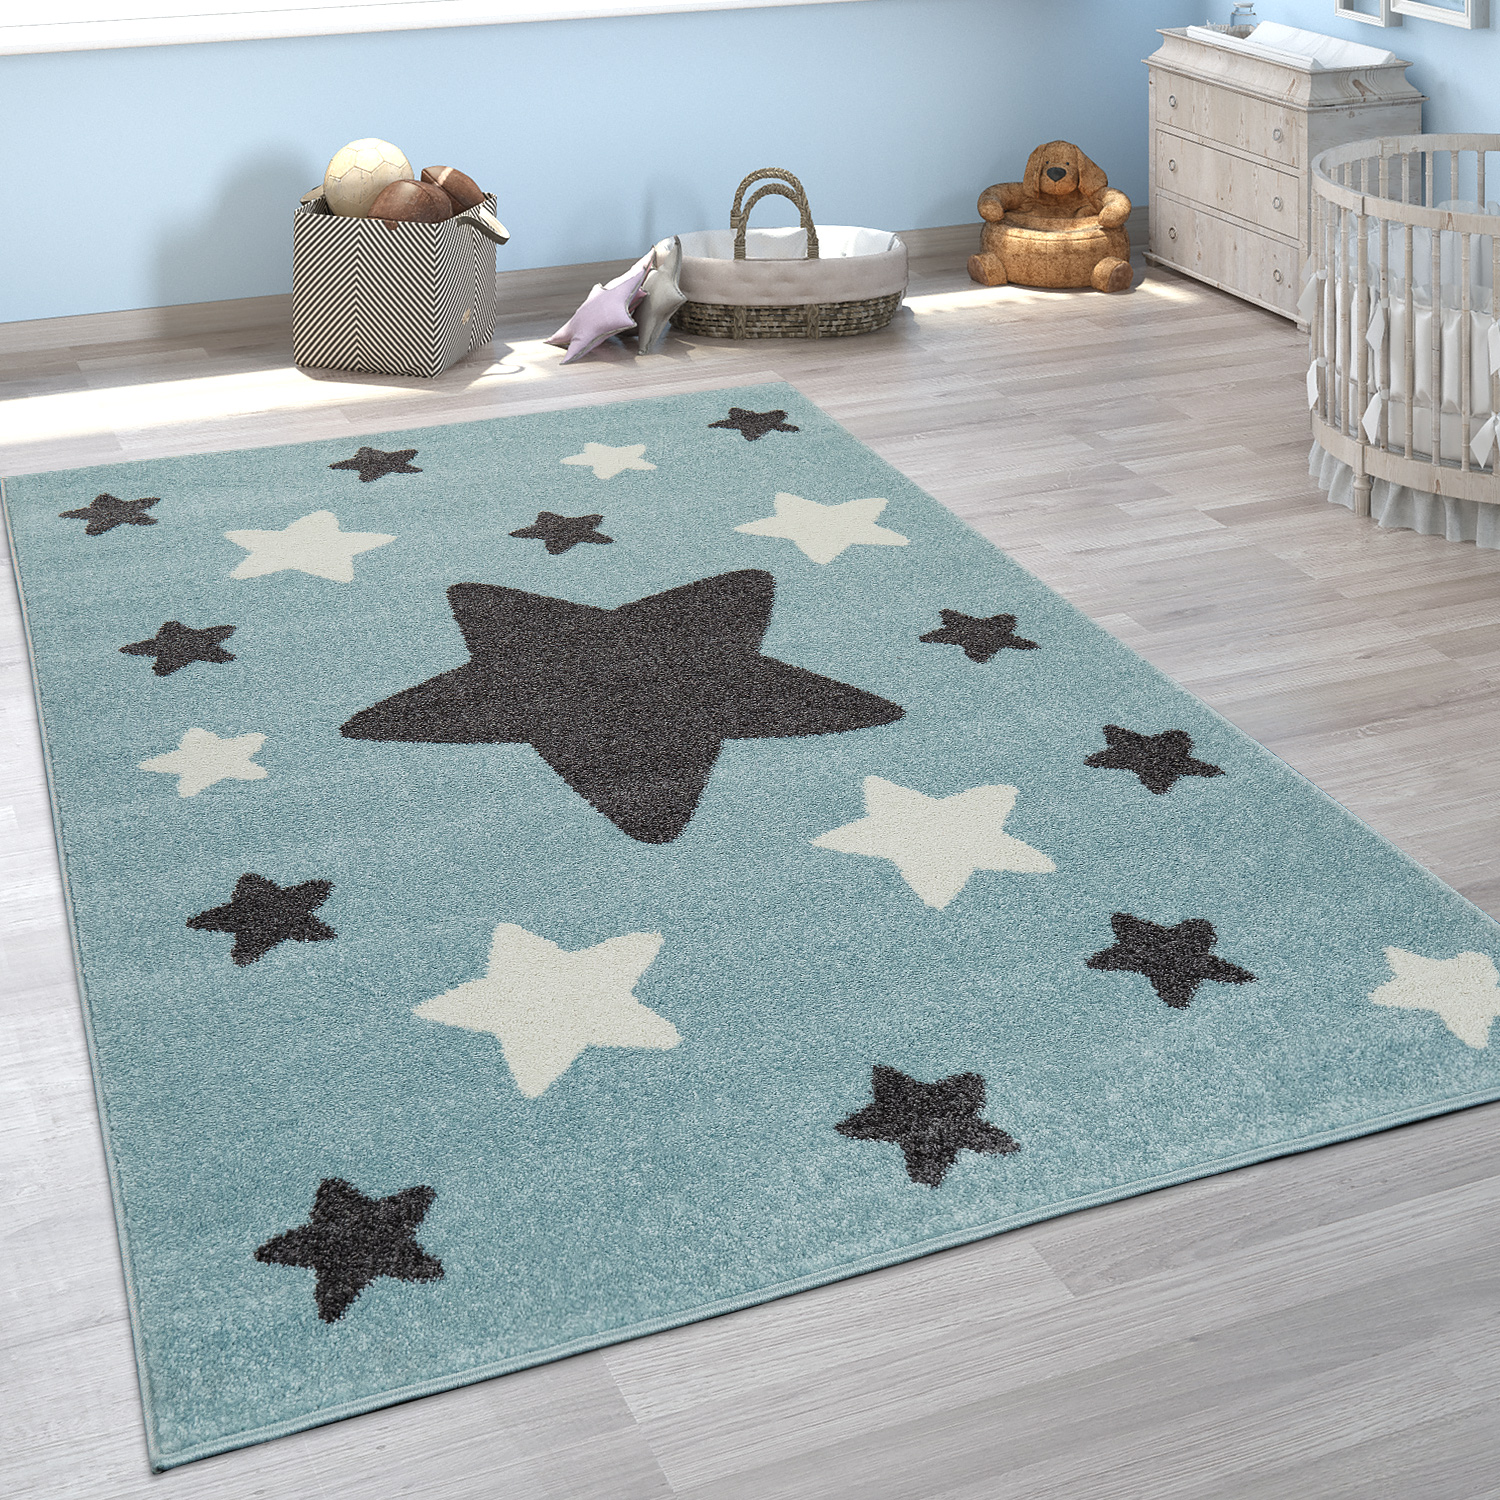 Rug Childrens Bedroom Childrens Rug Large and Small Stars in Blue Grey